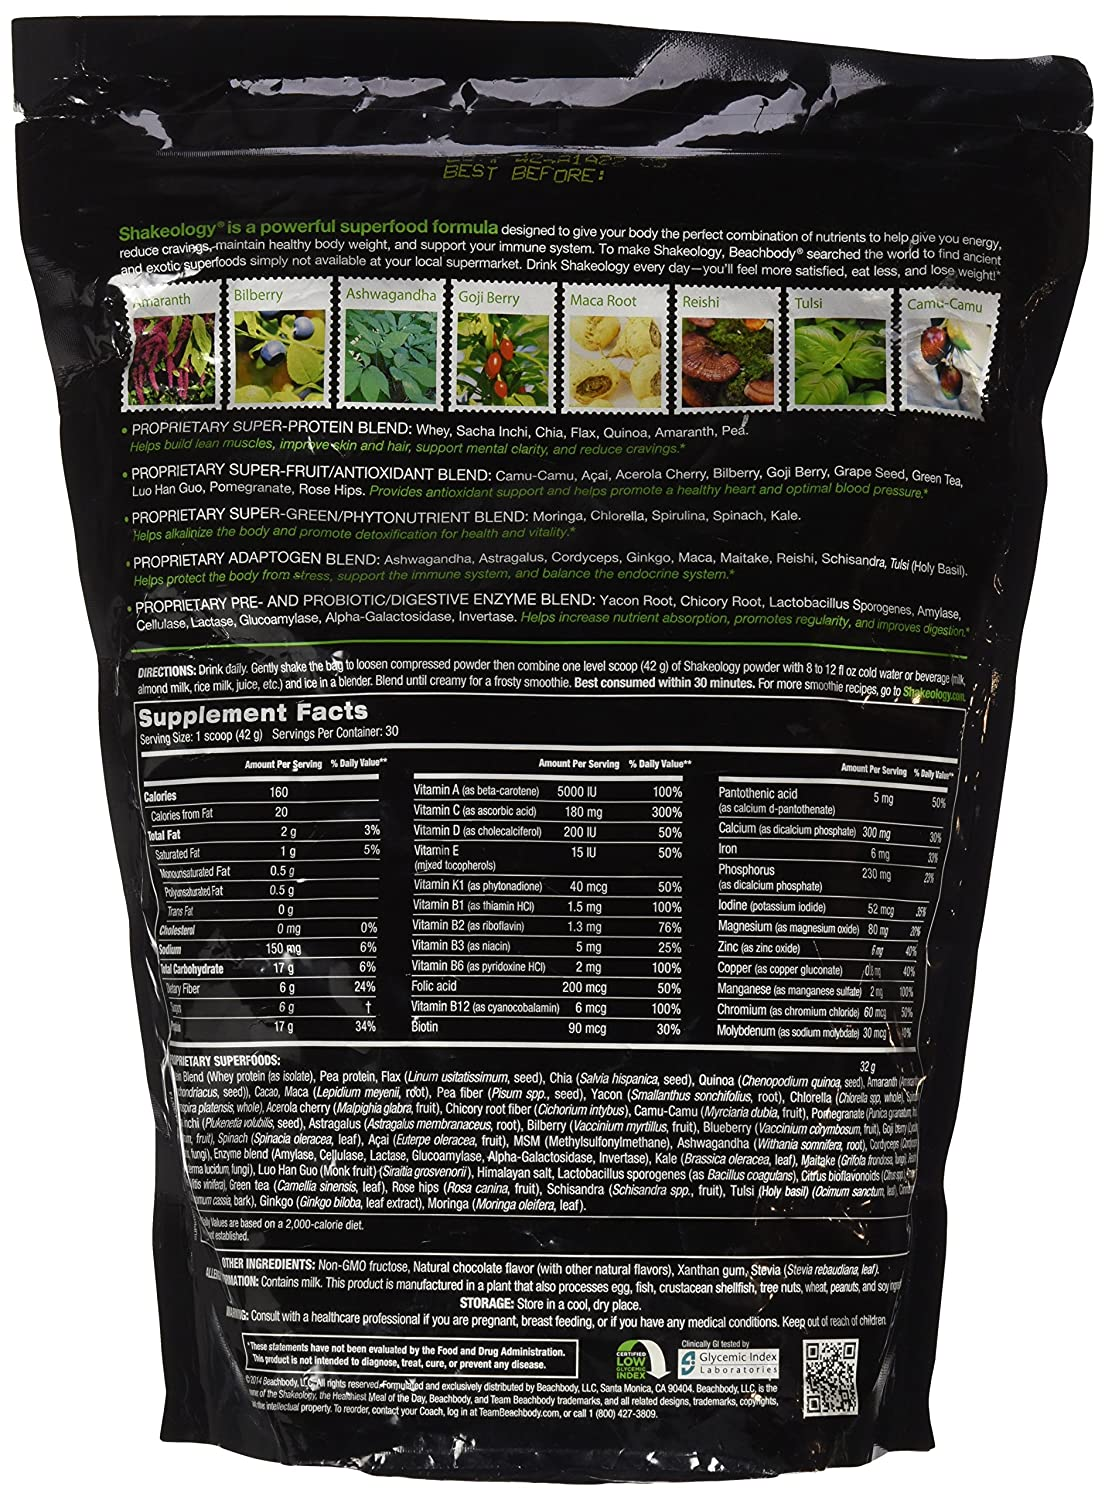 Amazon.com: Shakeology Chocolate 30 Servings (bulk) in a BAG ...